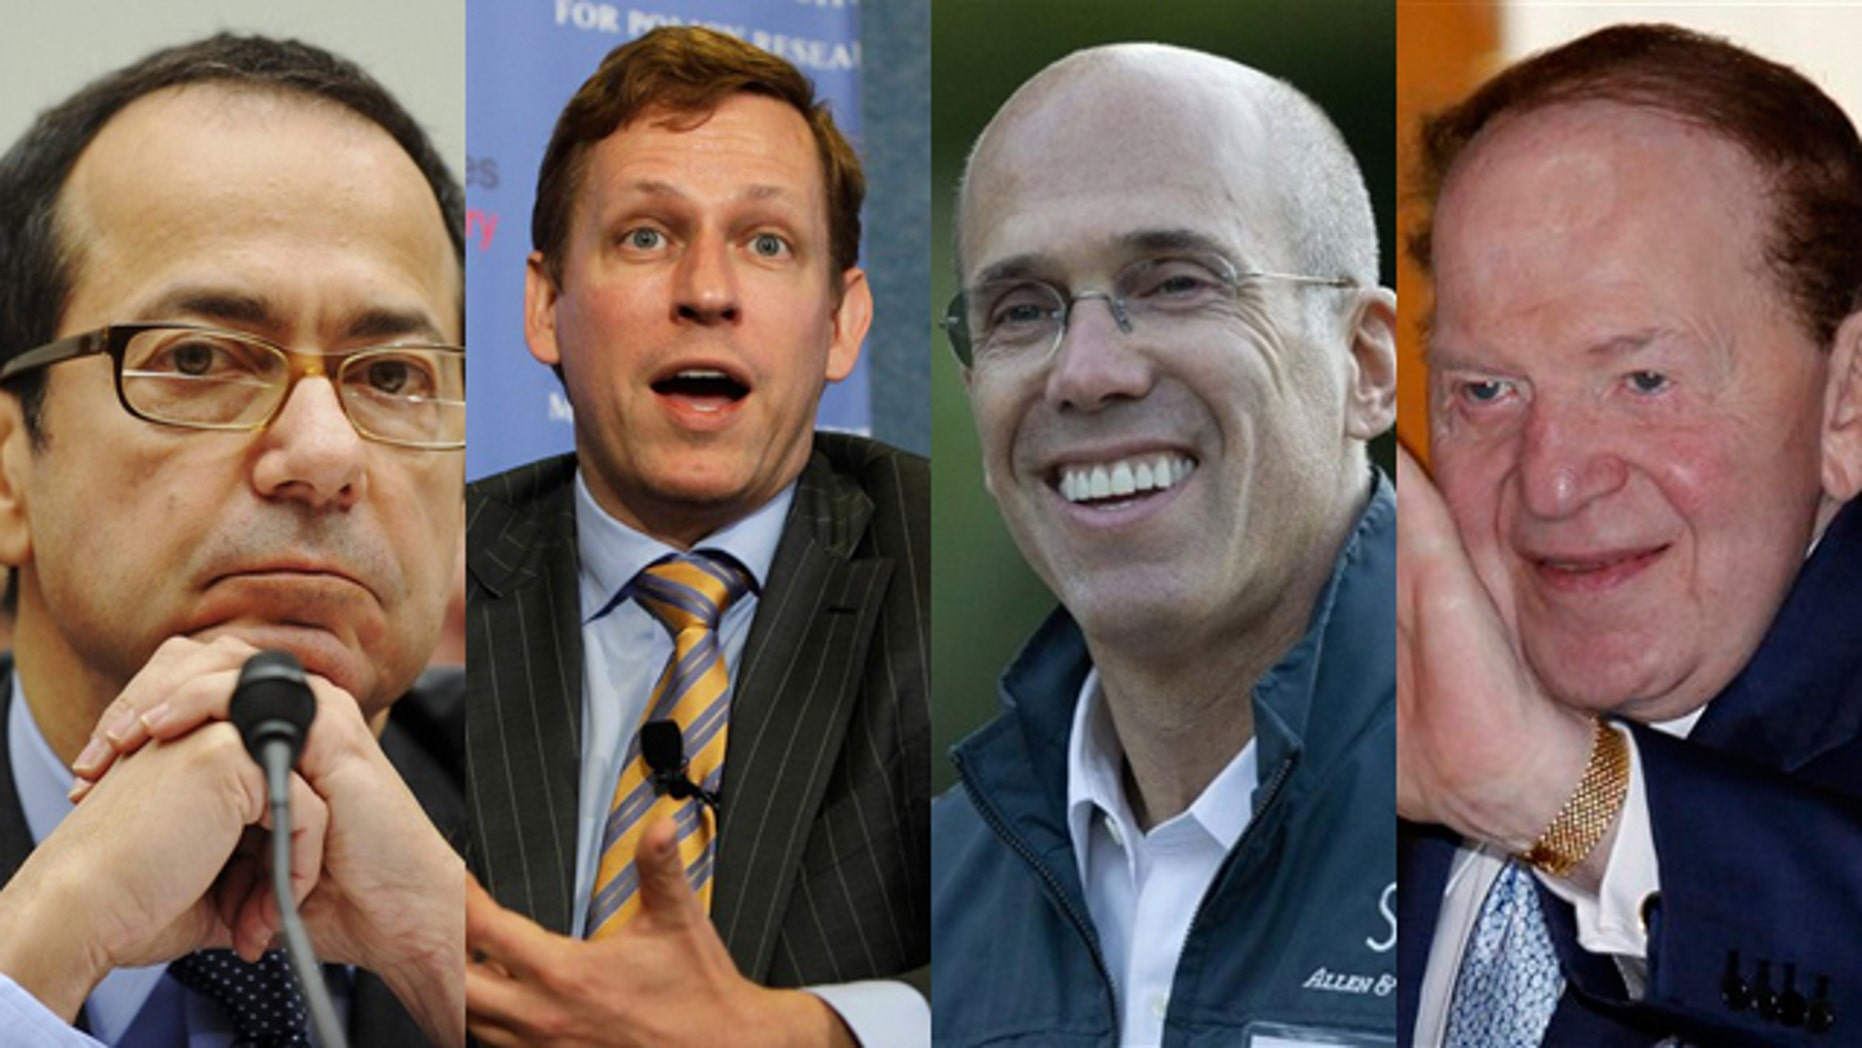 Shown here are supporters of 2012 candidate Super PACs. From left to right are: hedge fund investor John Paulson, PayPal co-founder Peter Thiel, DreamWorks executive Jeffrey Katzenberg, and casino magnate Sheldon Adelson.